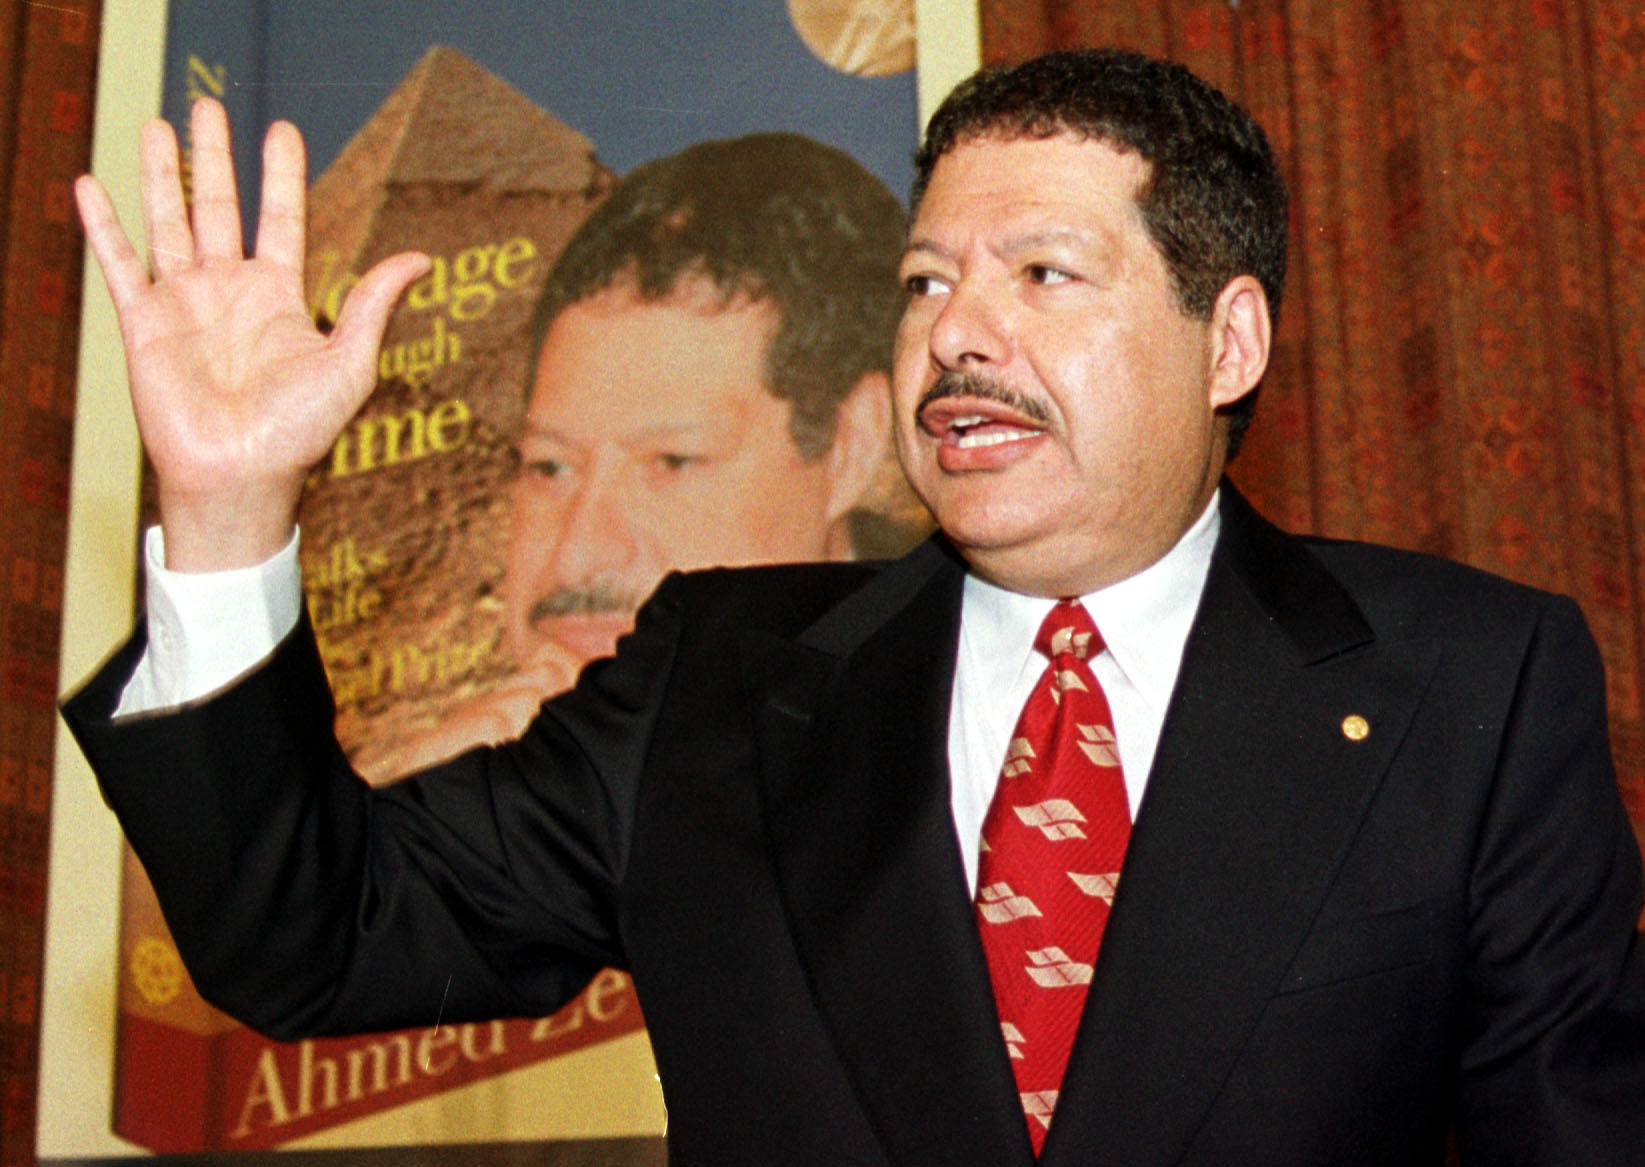 ahmed zewail Ahmed zewail chemist specialty femtochemistry born feb 26, 1946 (age 67) damanhour, egypt nationality egyptian, american ahmed zewail can be considered one of the most well-known scientists to be born in egypt.